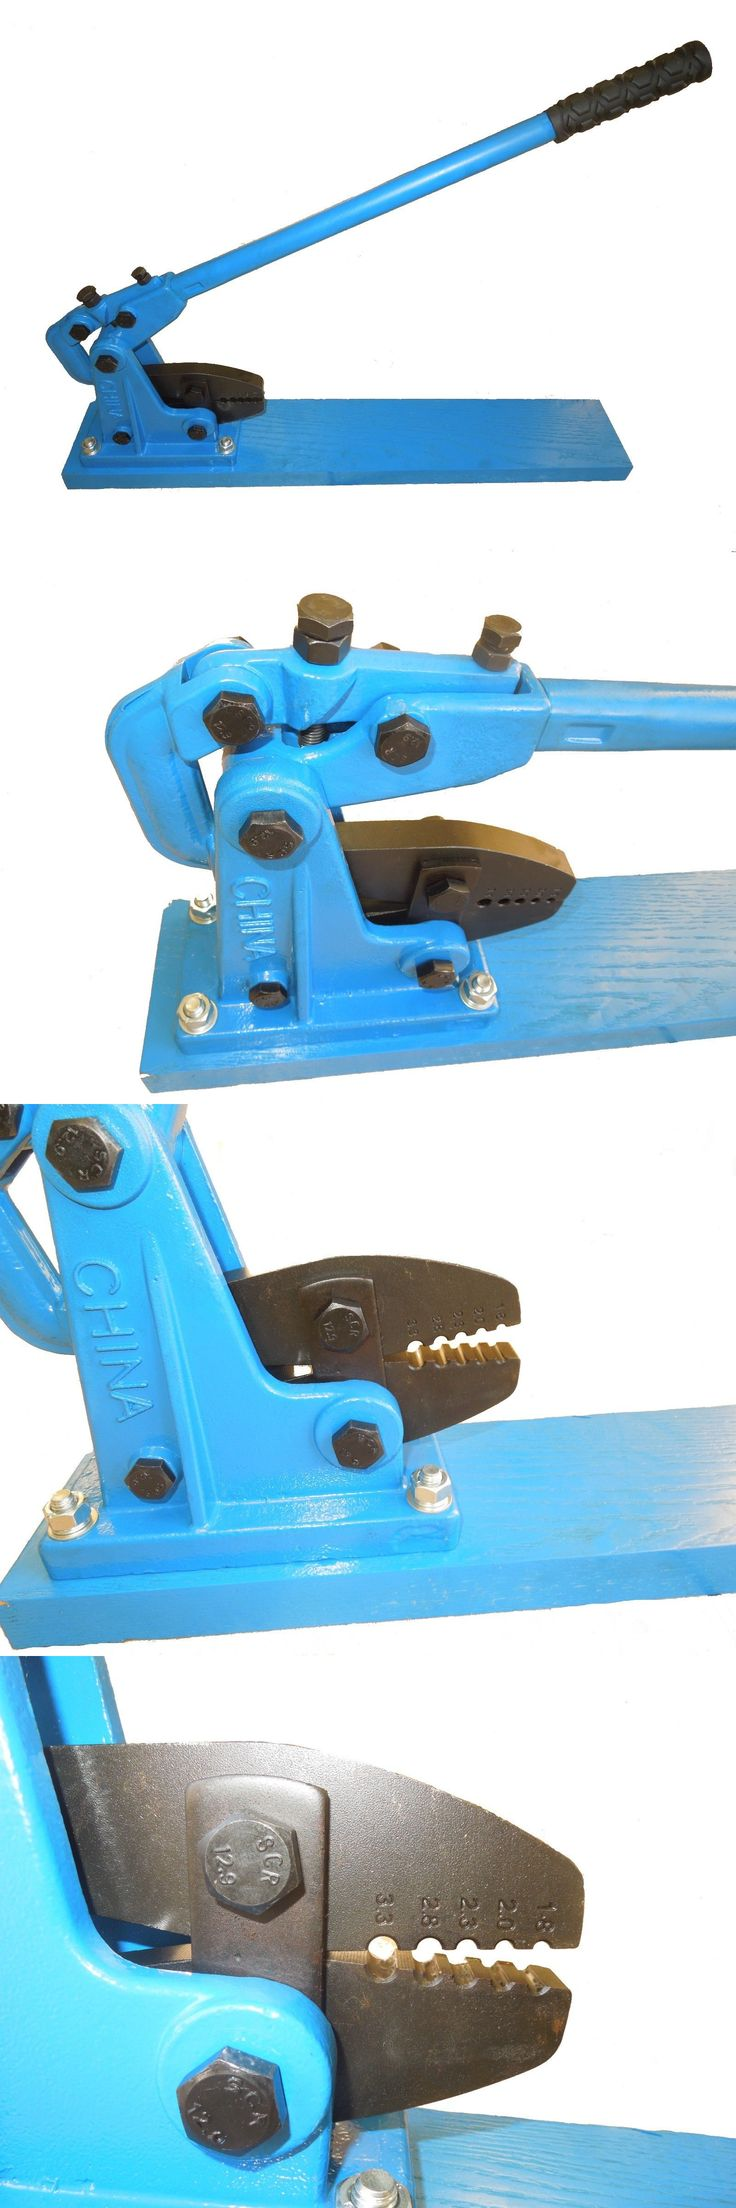 Other Fishing Equipment 27414: Commercial Fishing Bench Crimper Big Blue For Mono Or Cable Warehouse Sale!! -> BUY IT NOW ONLY: $219.0 on eBay!